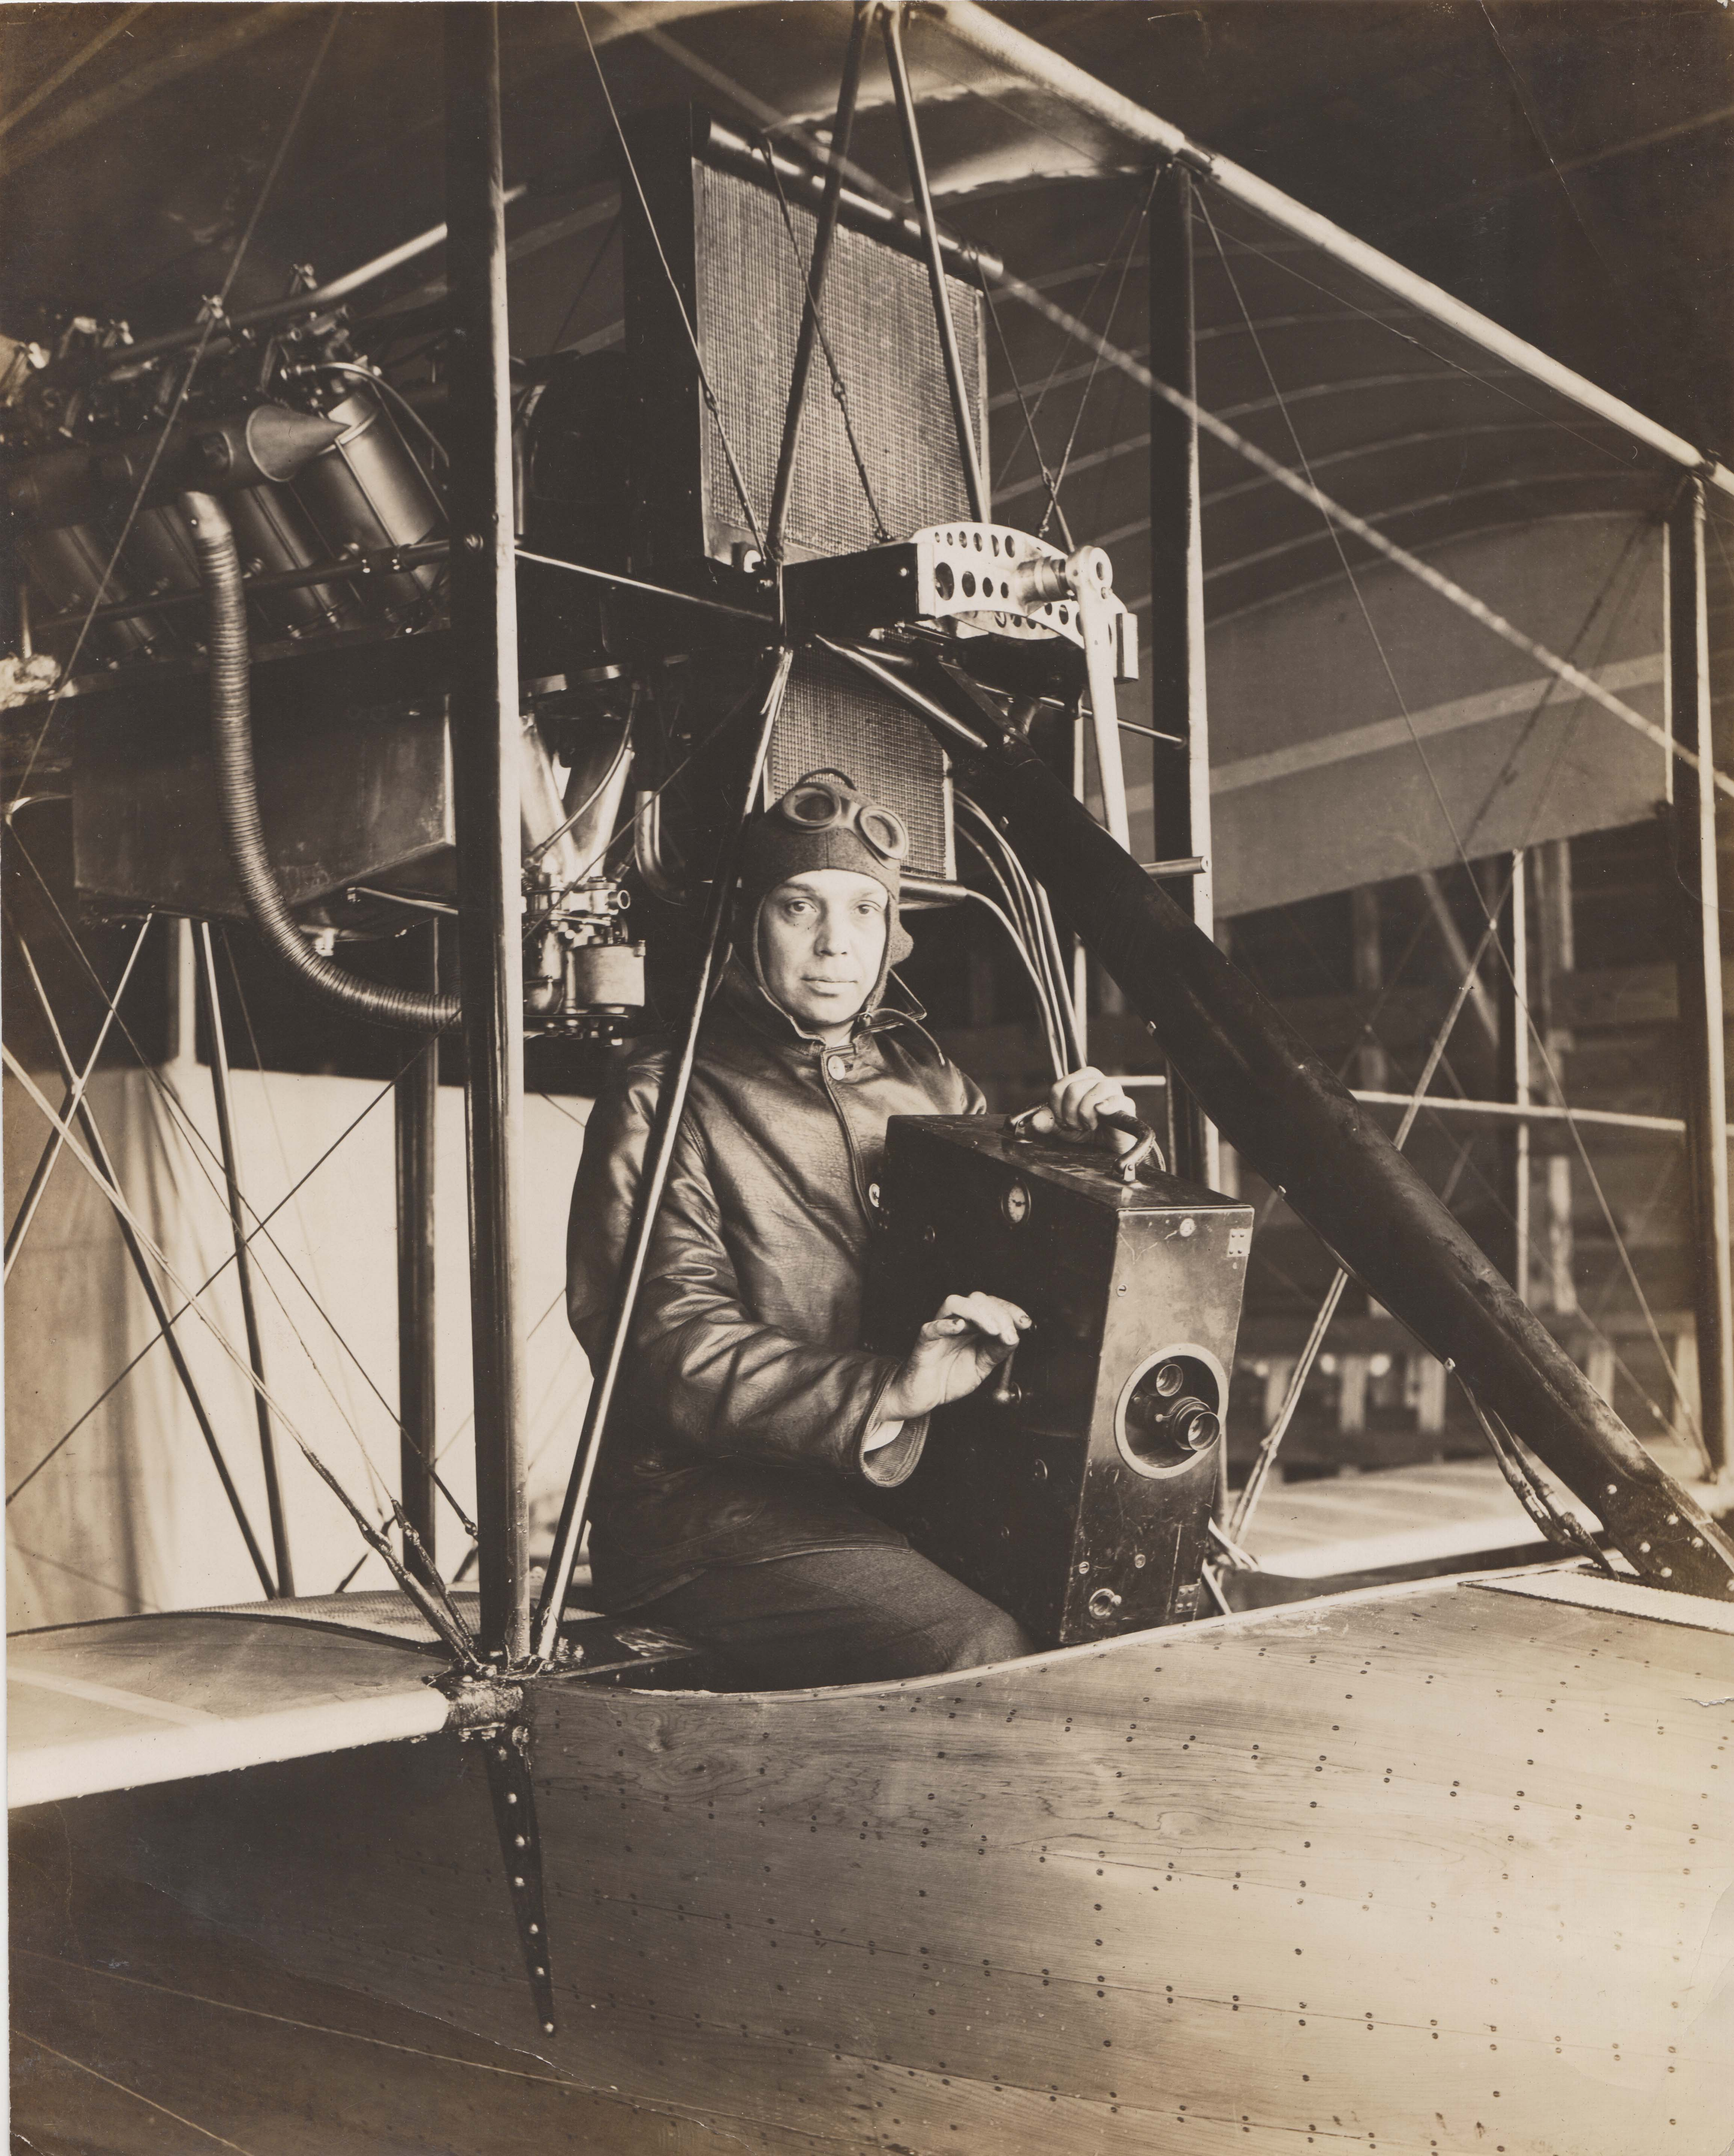 0227 A pilot with black box in cockpit